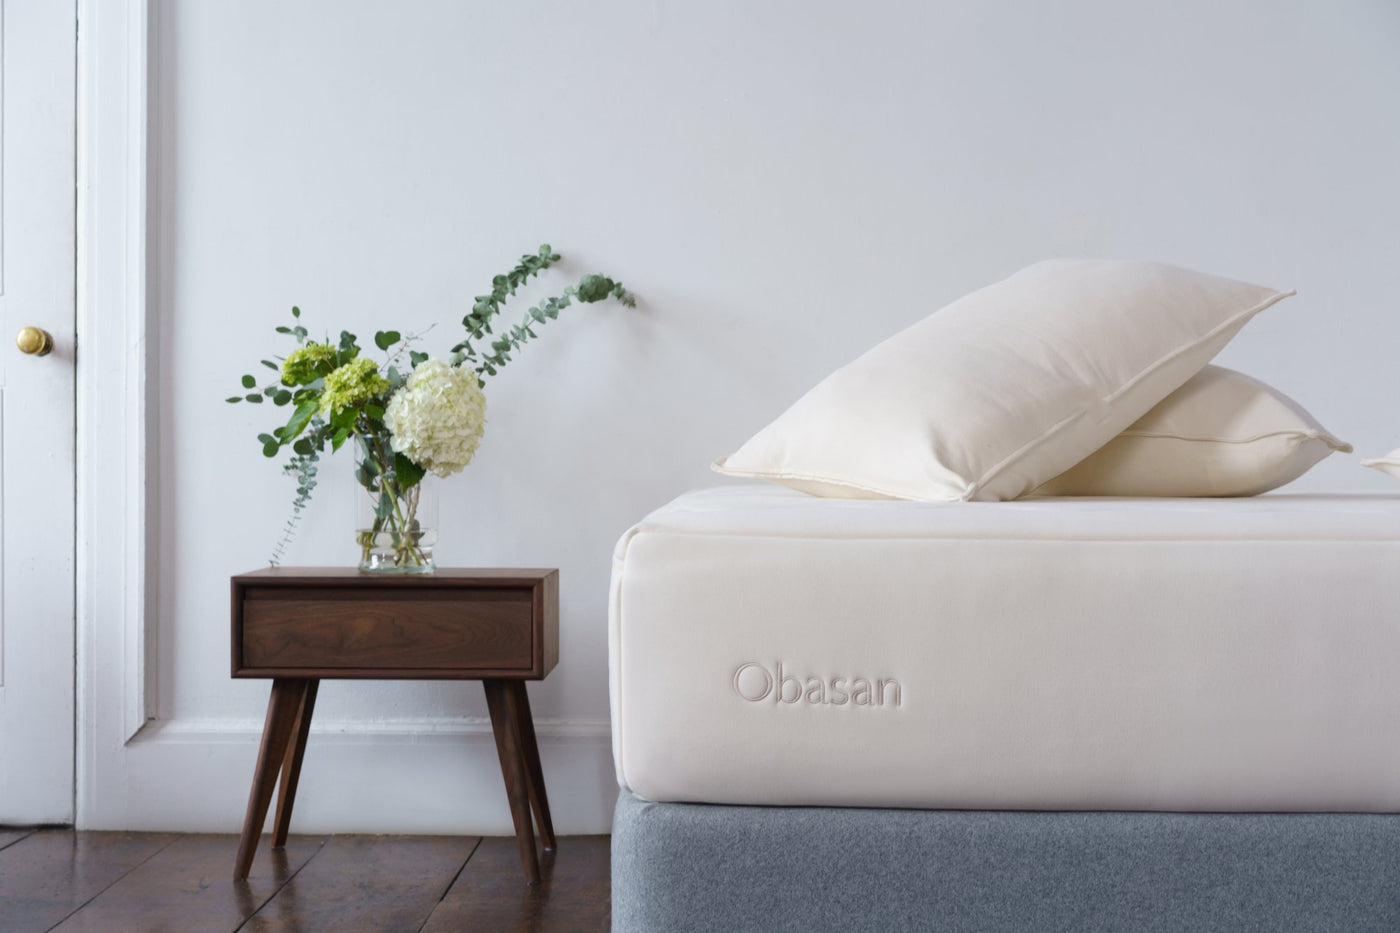 Obasan Natural Mattresses, Bedding, Pillows, Mattress Foundations - Made in Canada